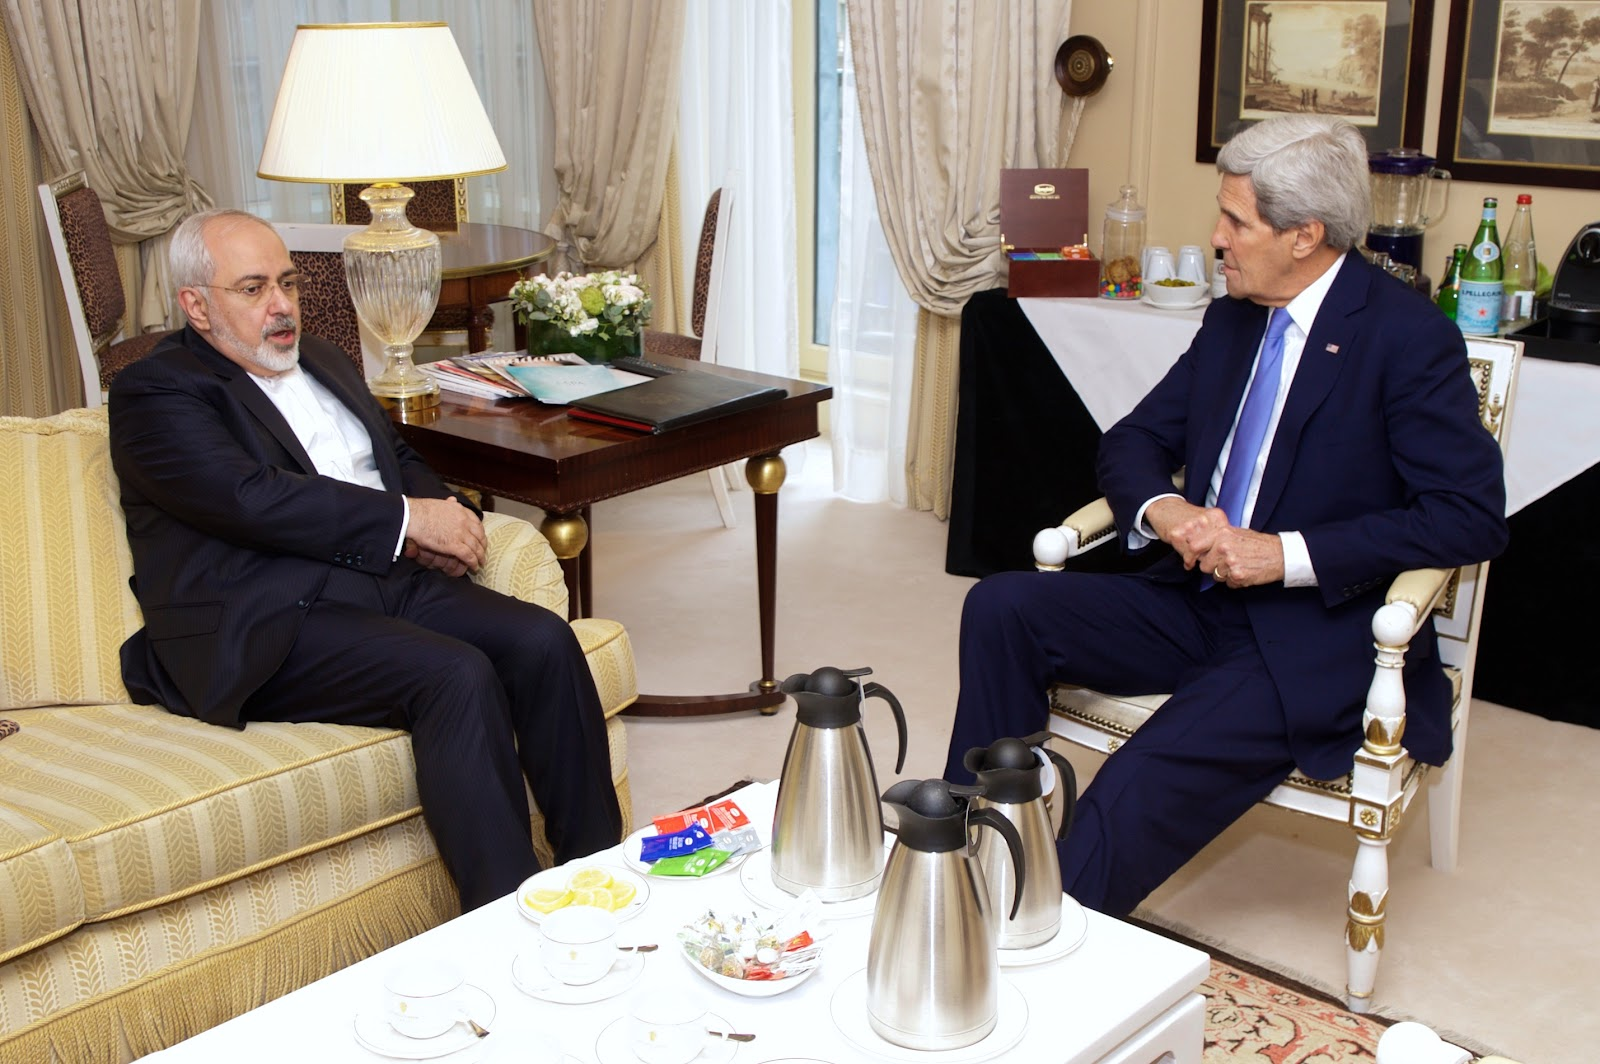 Secretary_Kerry_Meets_With_Iranian_Foreign_Minister_Zarif_in_Paris_to_Continue_Nuclear_Program_Negotiations_(16107653417).jpg